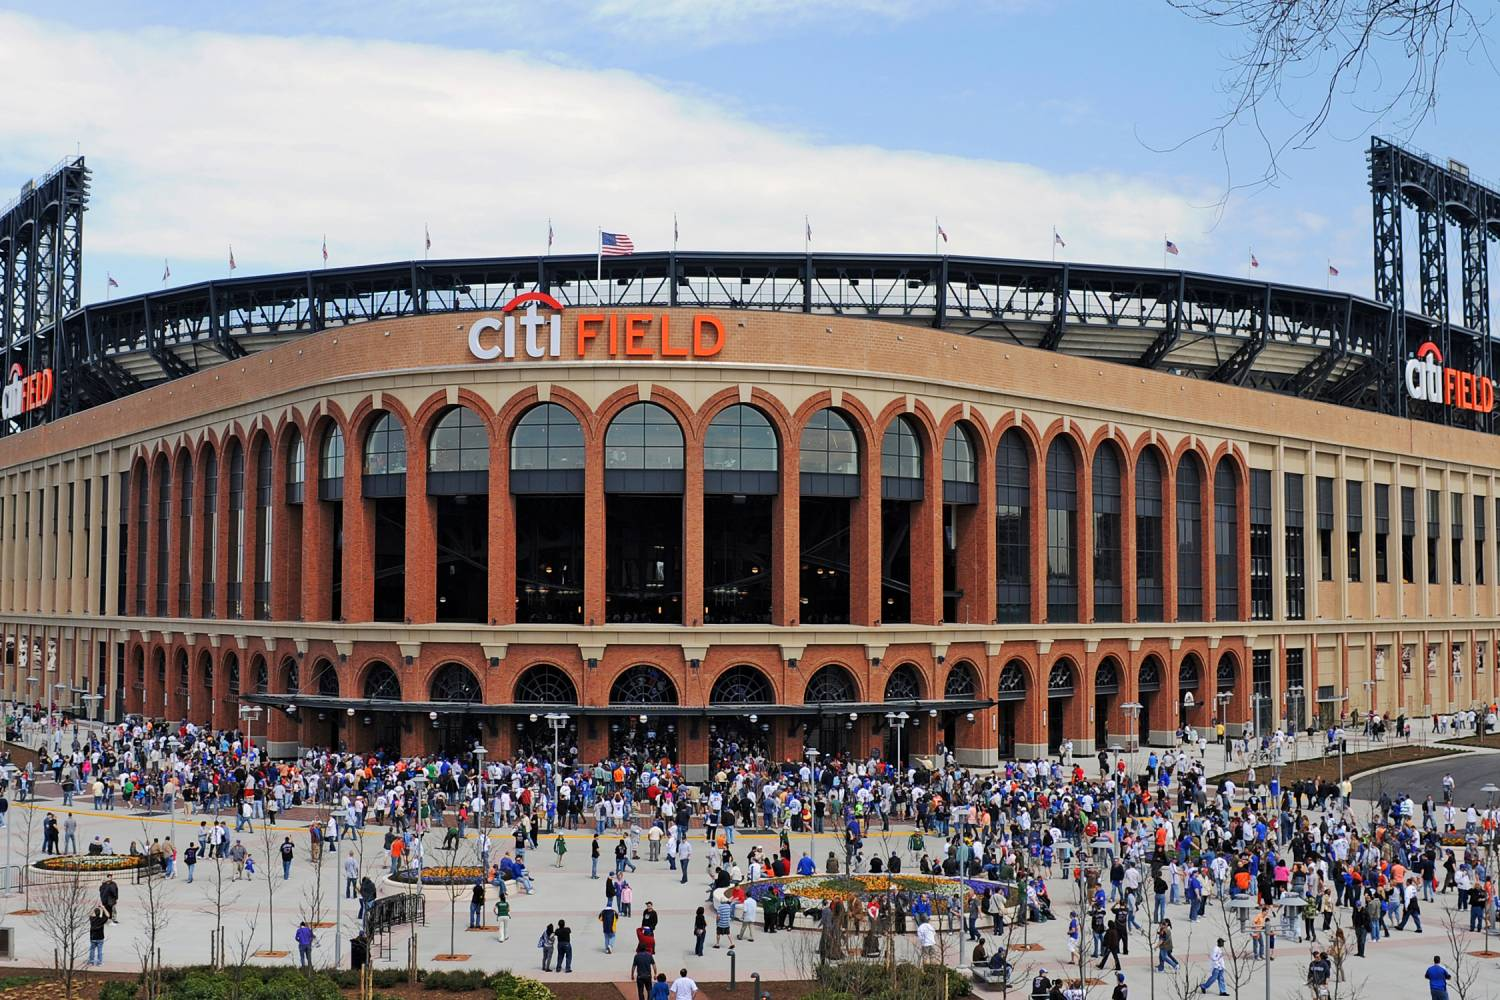 Citi Field New York Mets Ballpark – Concerts & More: NYCgo.com on